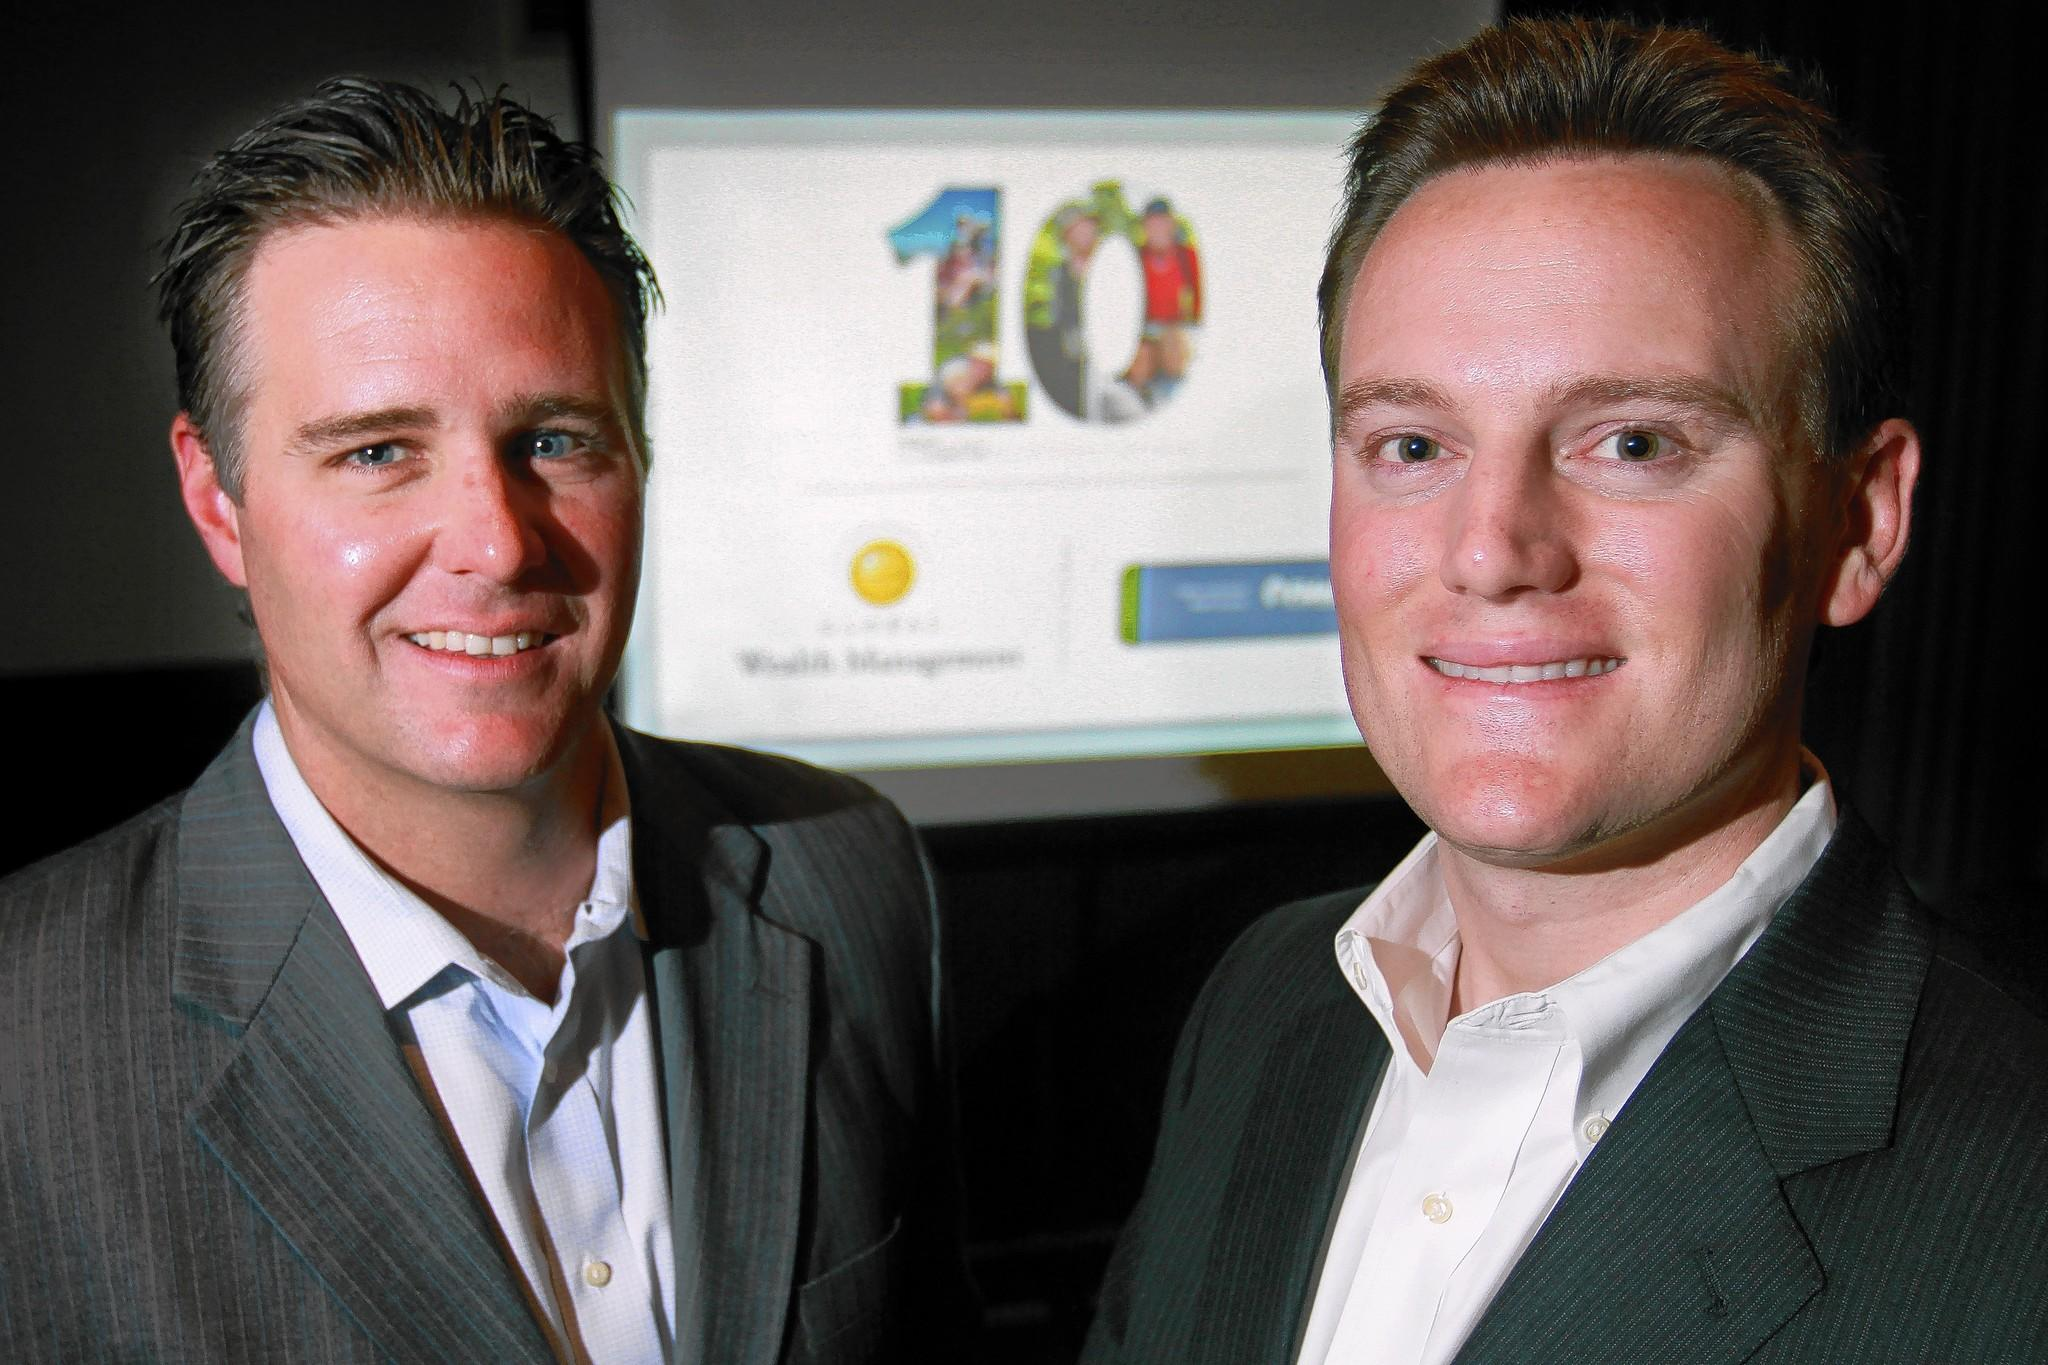 Grant Conness, 35, left, and Andrew Costa, 31, are Broward natives who now lead Global Wealth Management in Fort Lauderdale.